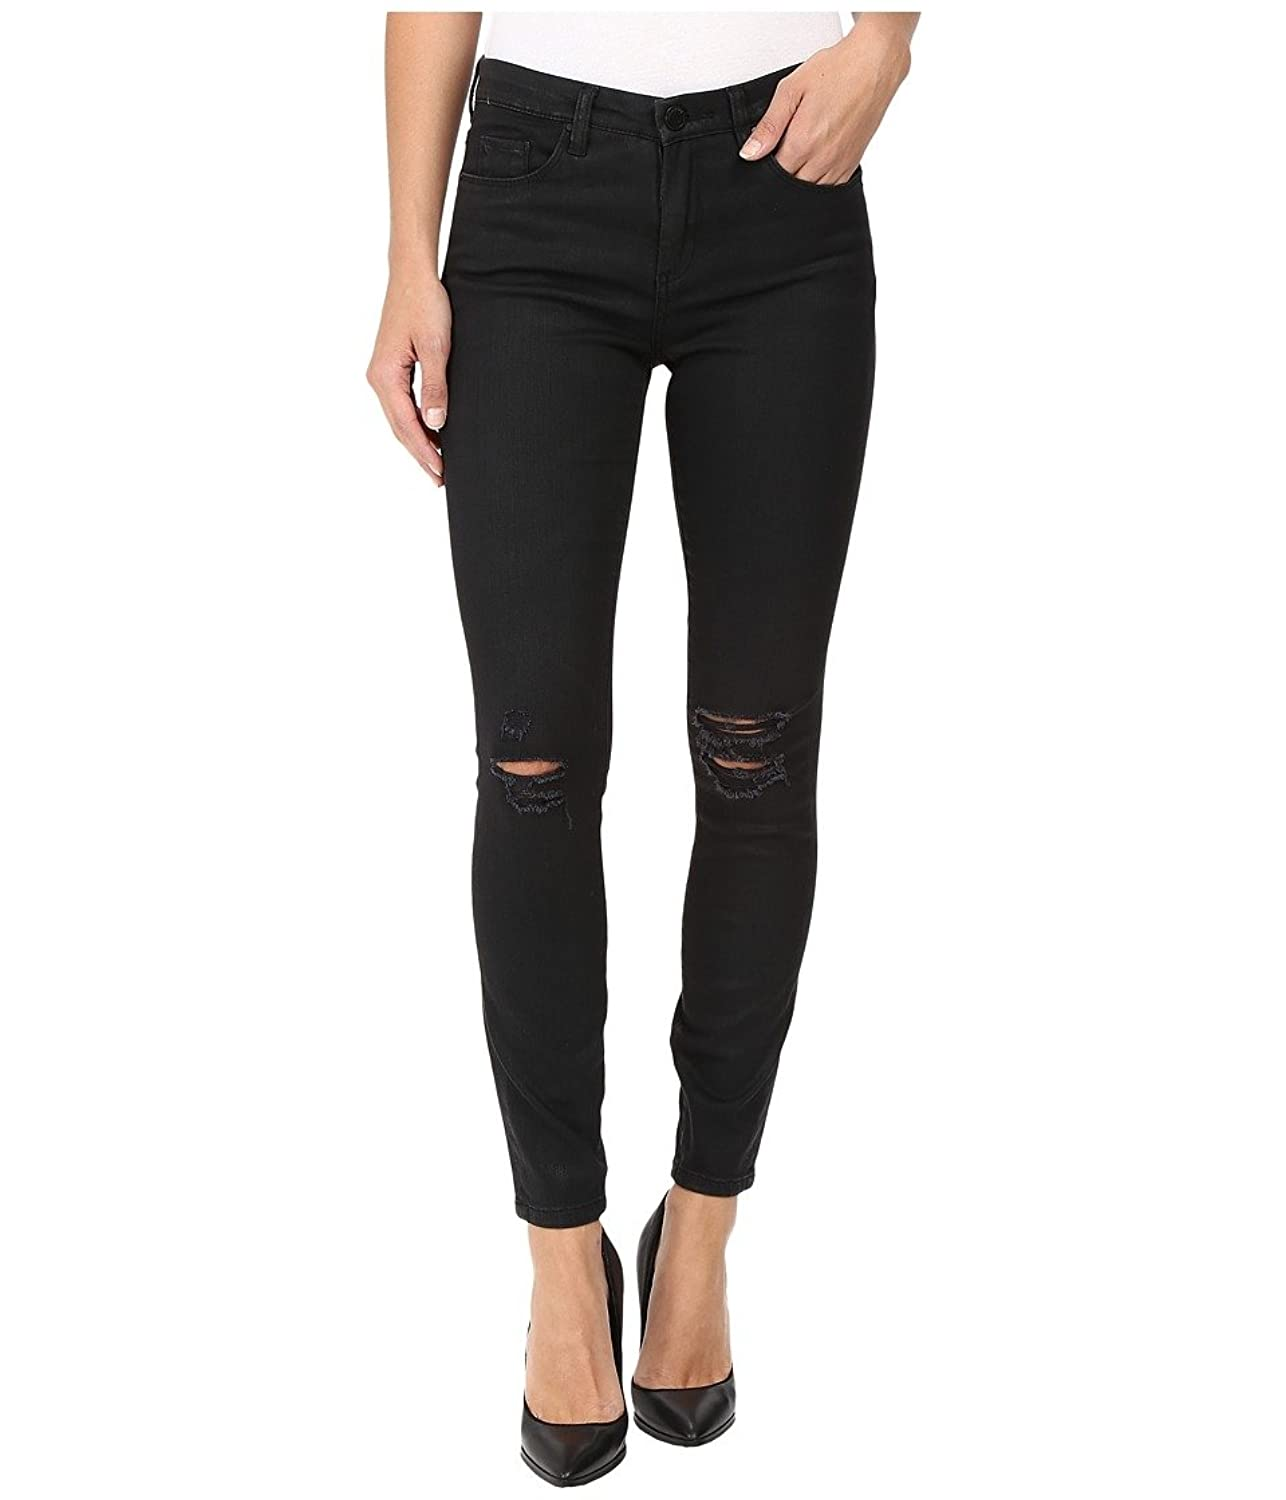 Blank NYC Women's Black Coated Skinny in All Lacquered Up All Lacquered Up Jeans 25 X 28